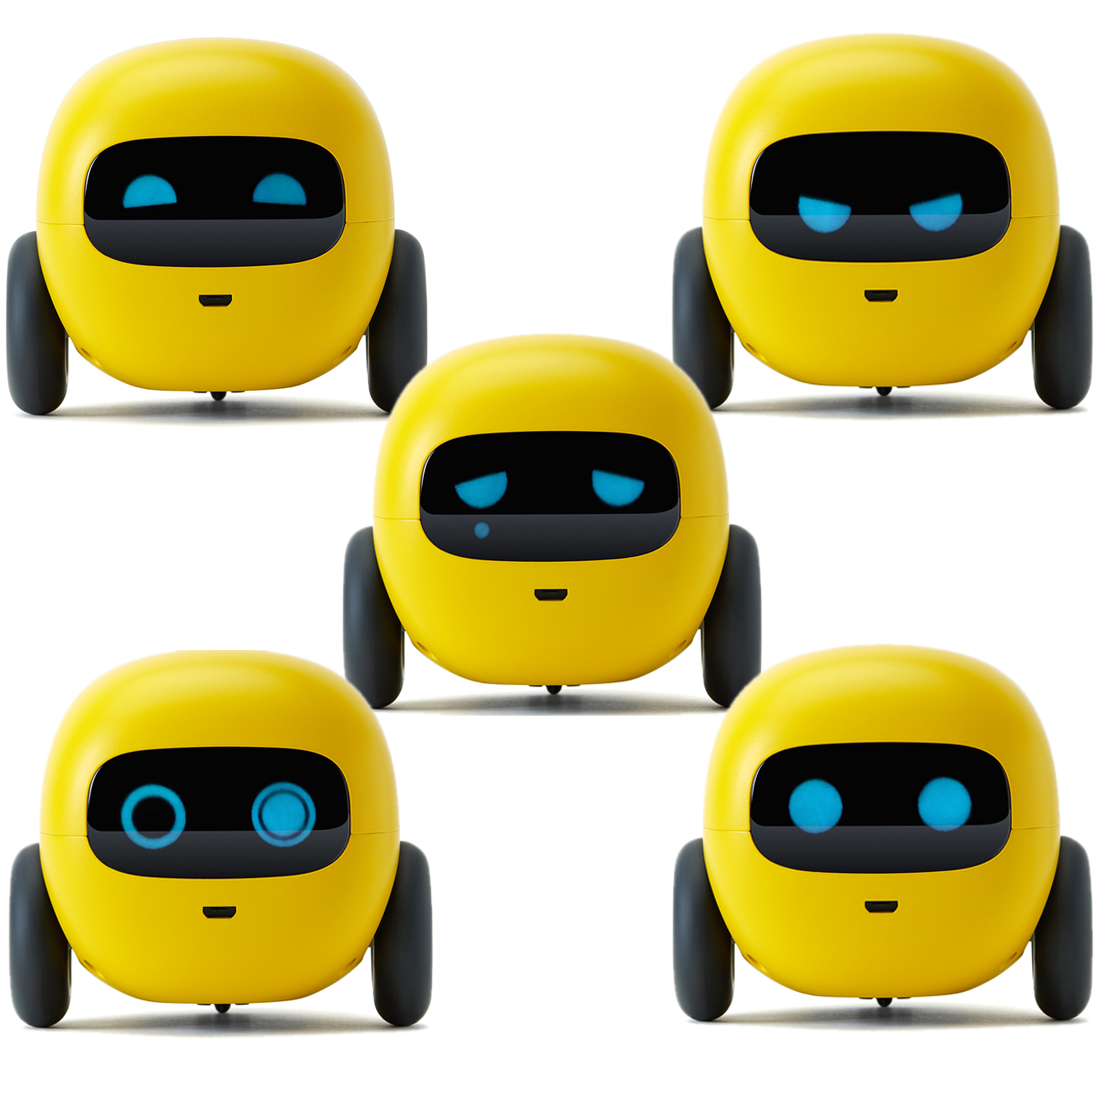 2019 New Mangobot Visual No Screen Type Enlightenment Building Block Secretly Teaches Coding Steam Robot Advanced Edition